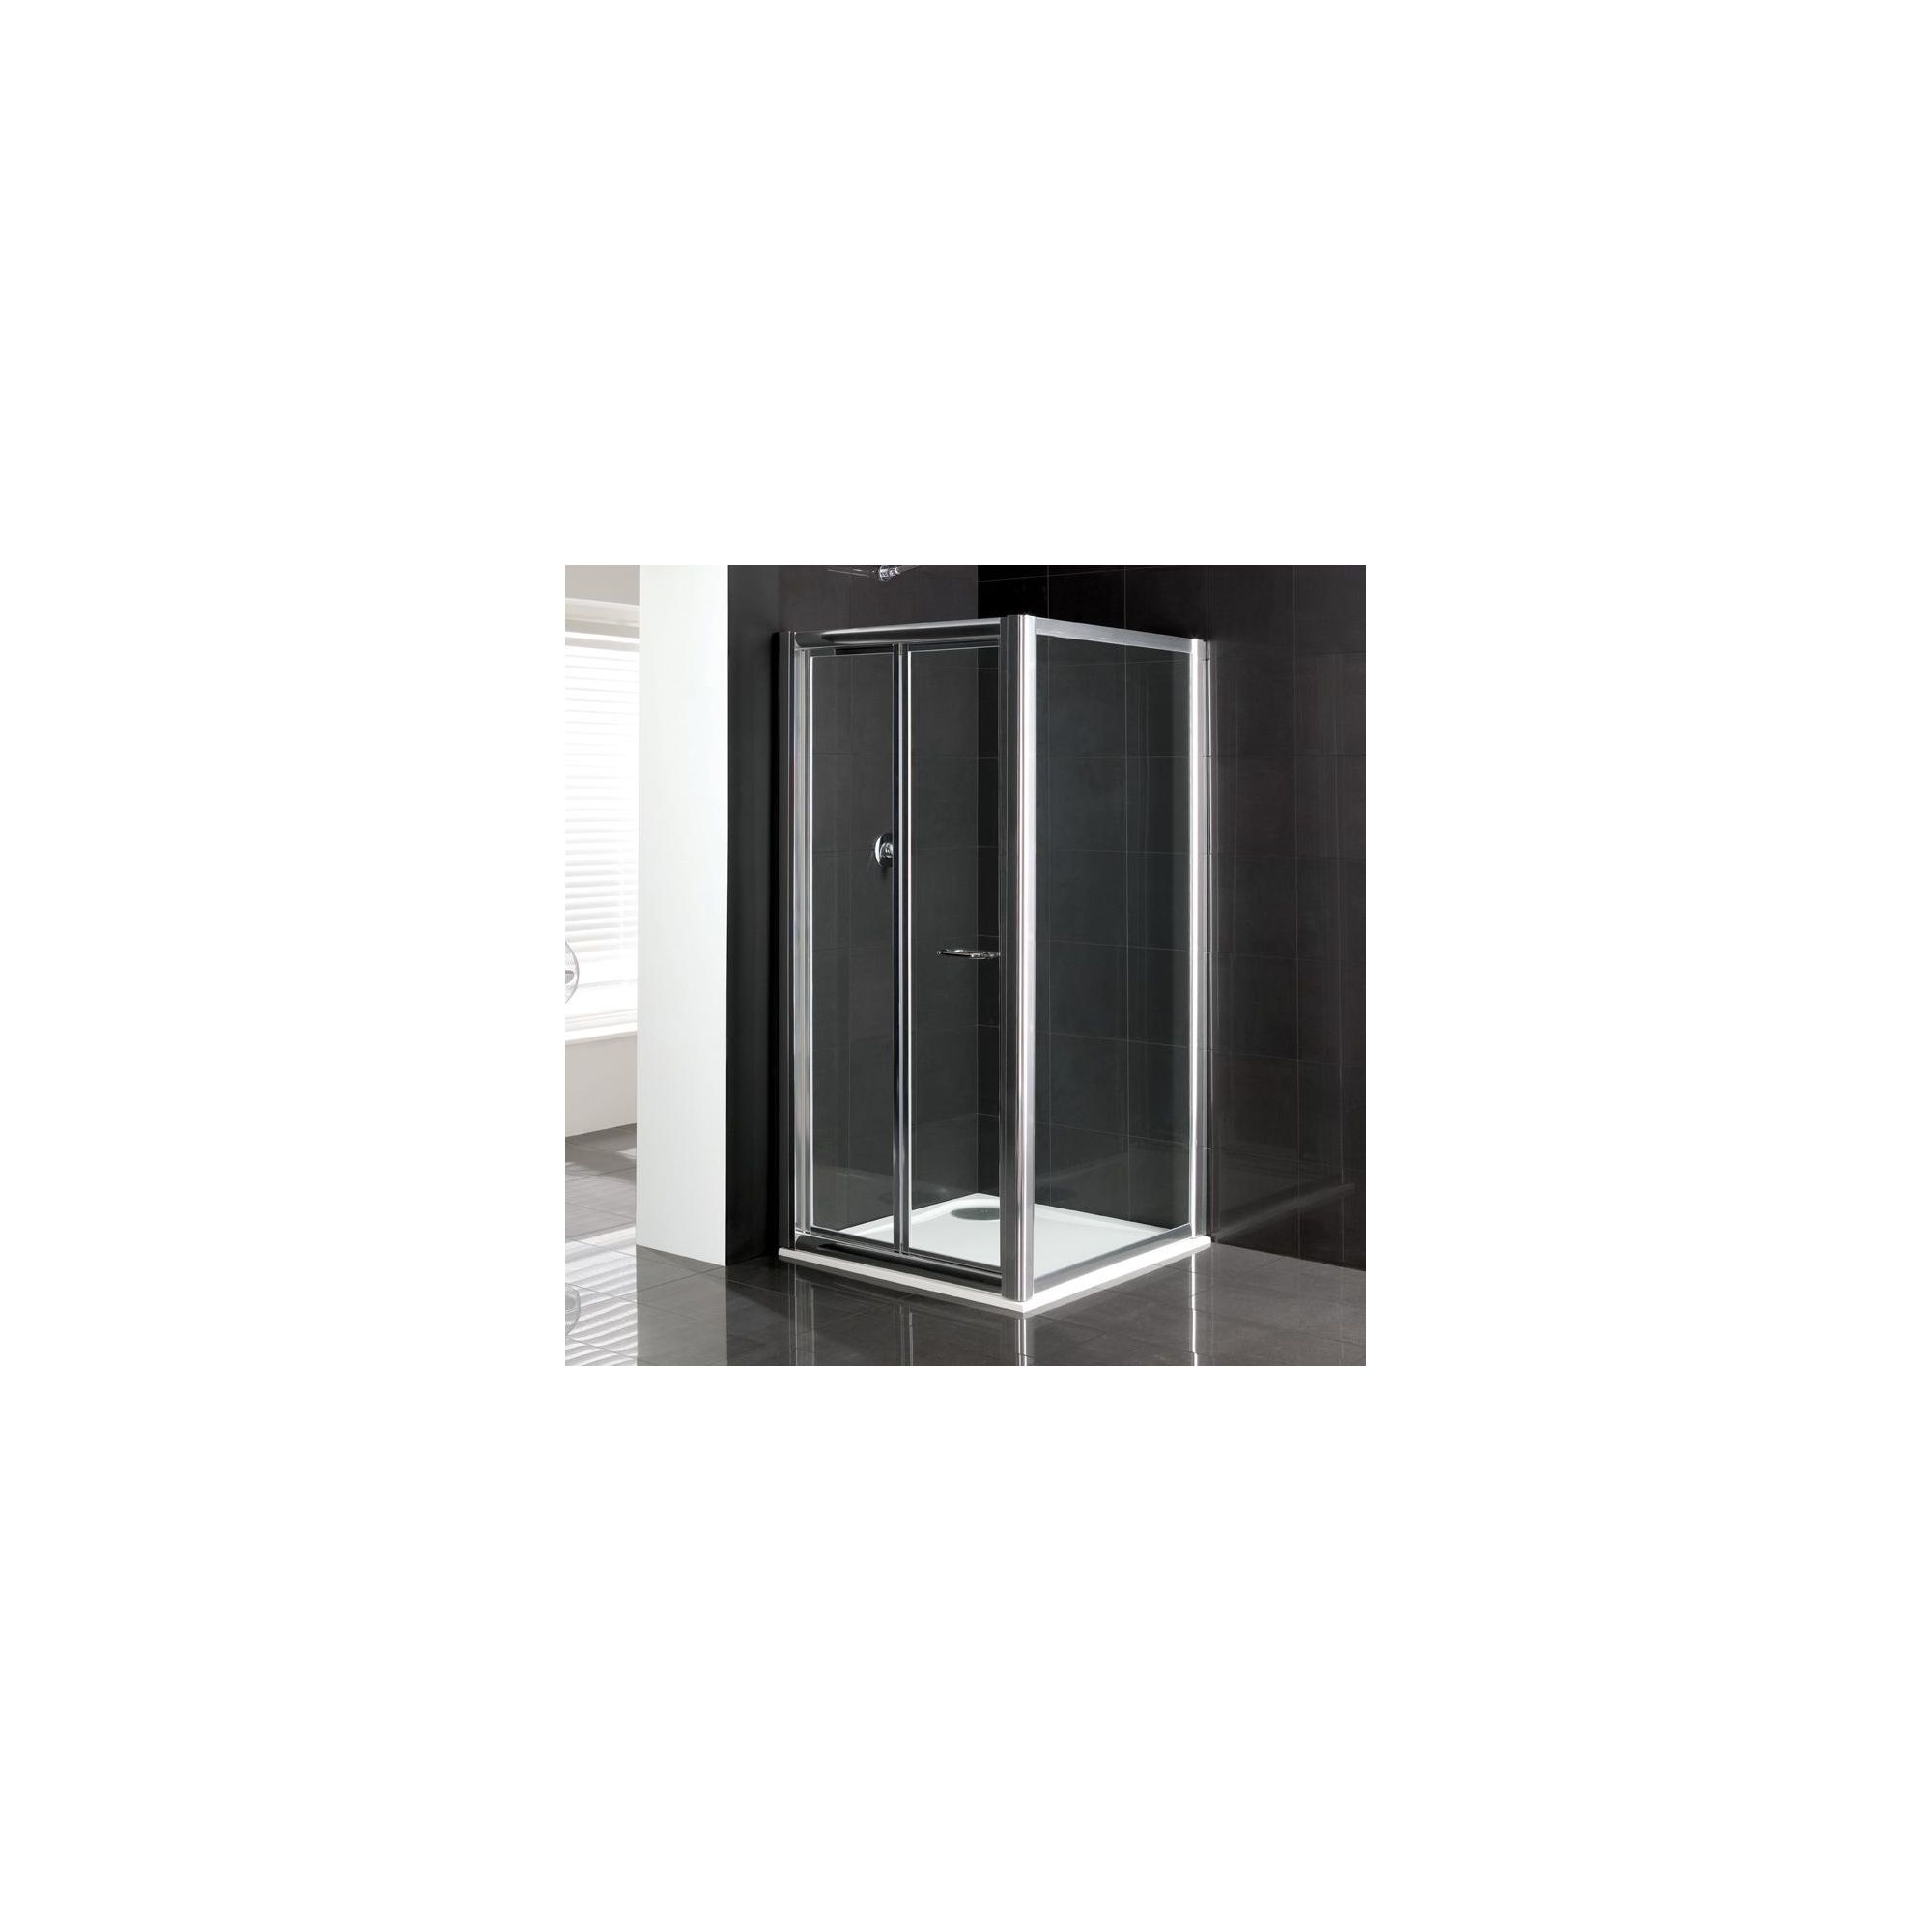 Duchy Elite Silver Bi-Fold Door Shower Enclosure with Towel Rail, 1000mm x 760mm, Standard Tray, 6mm Glass at Tesco Direct